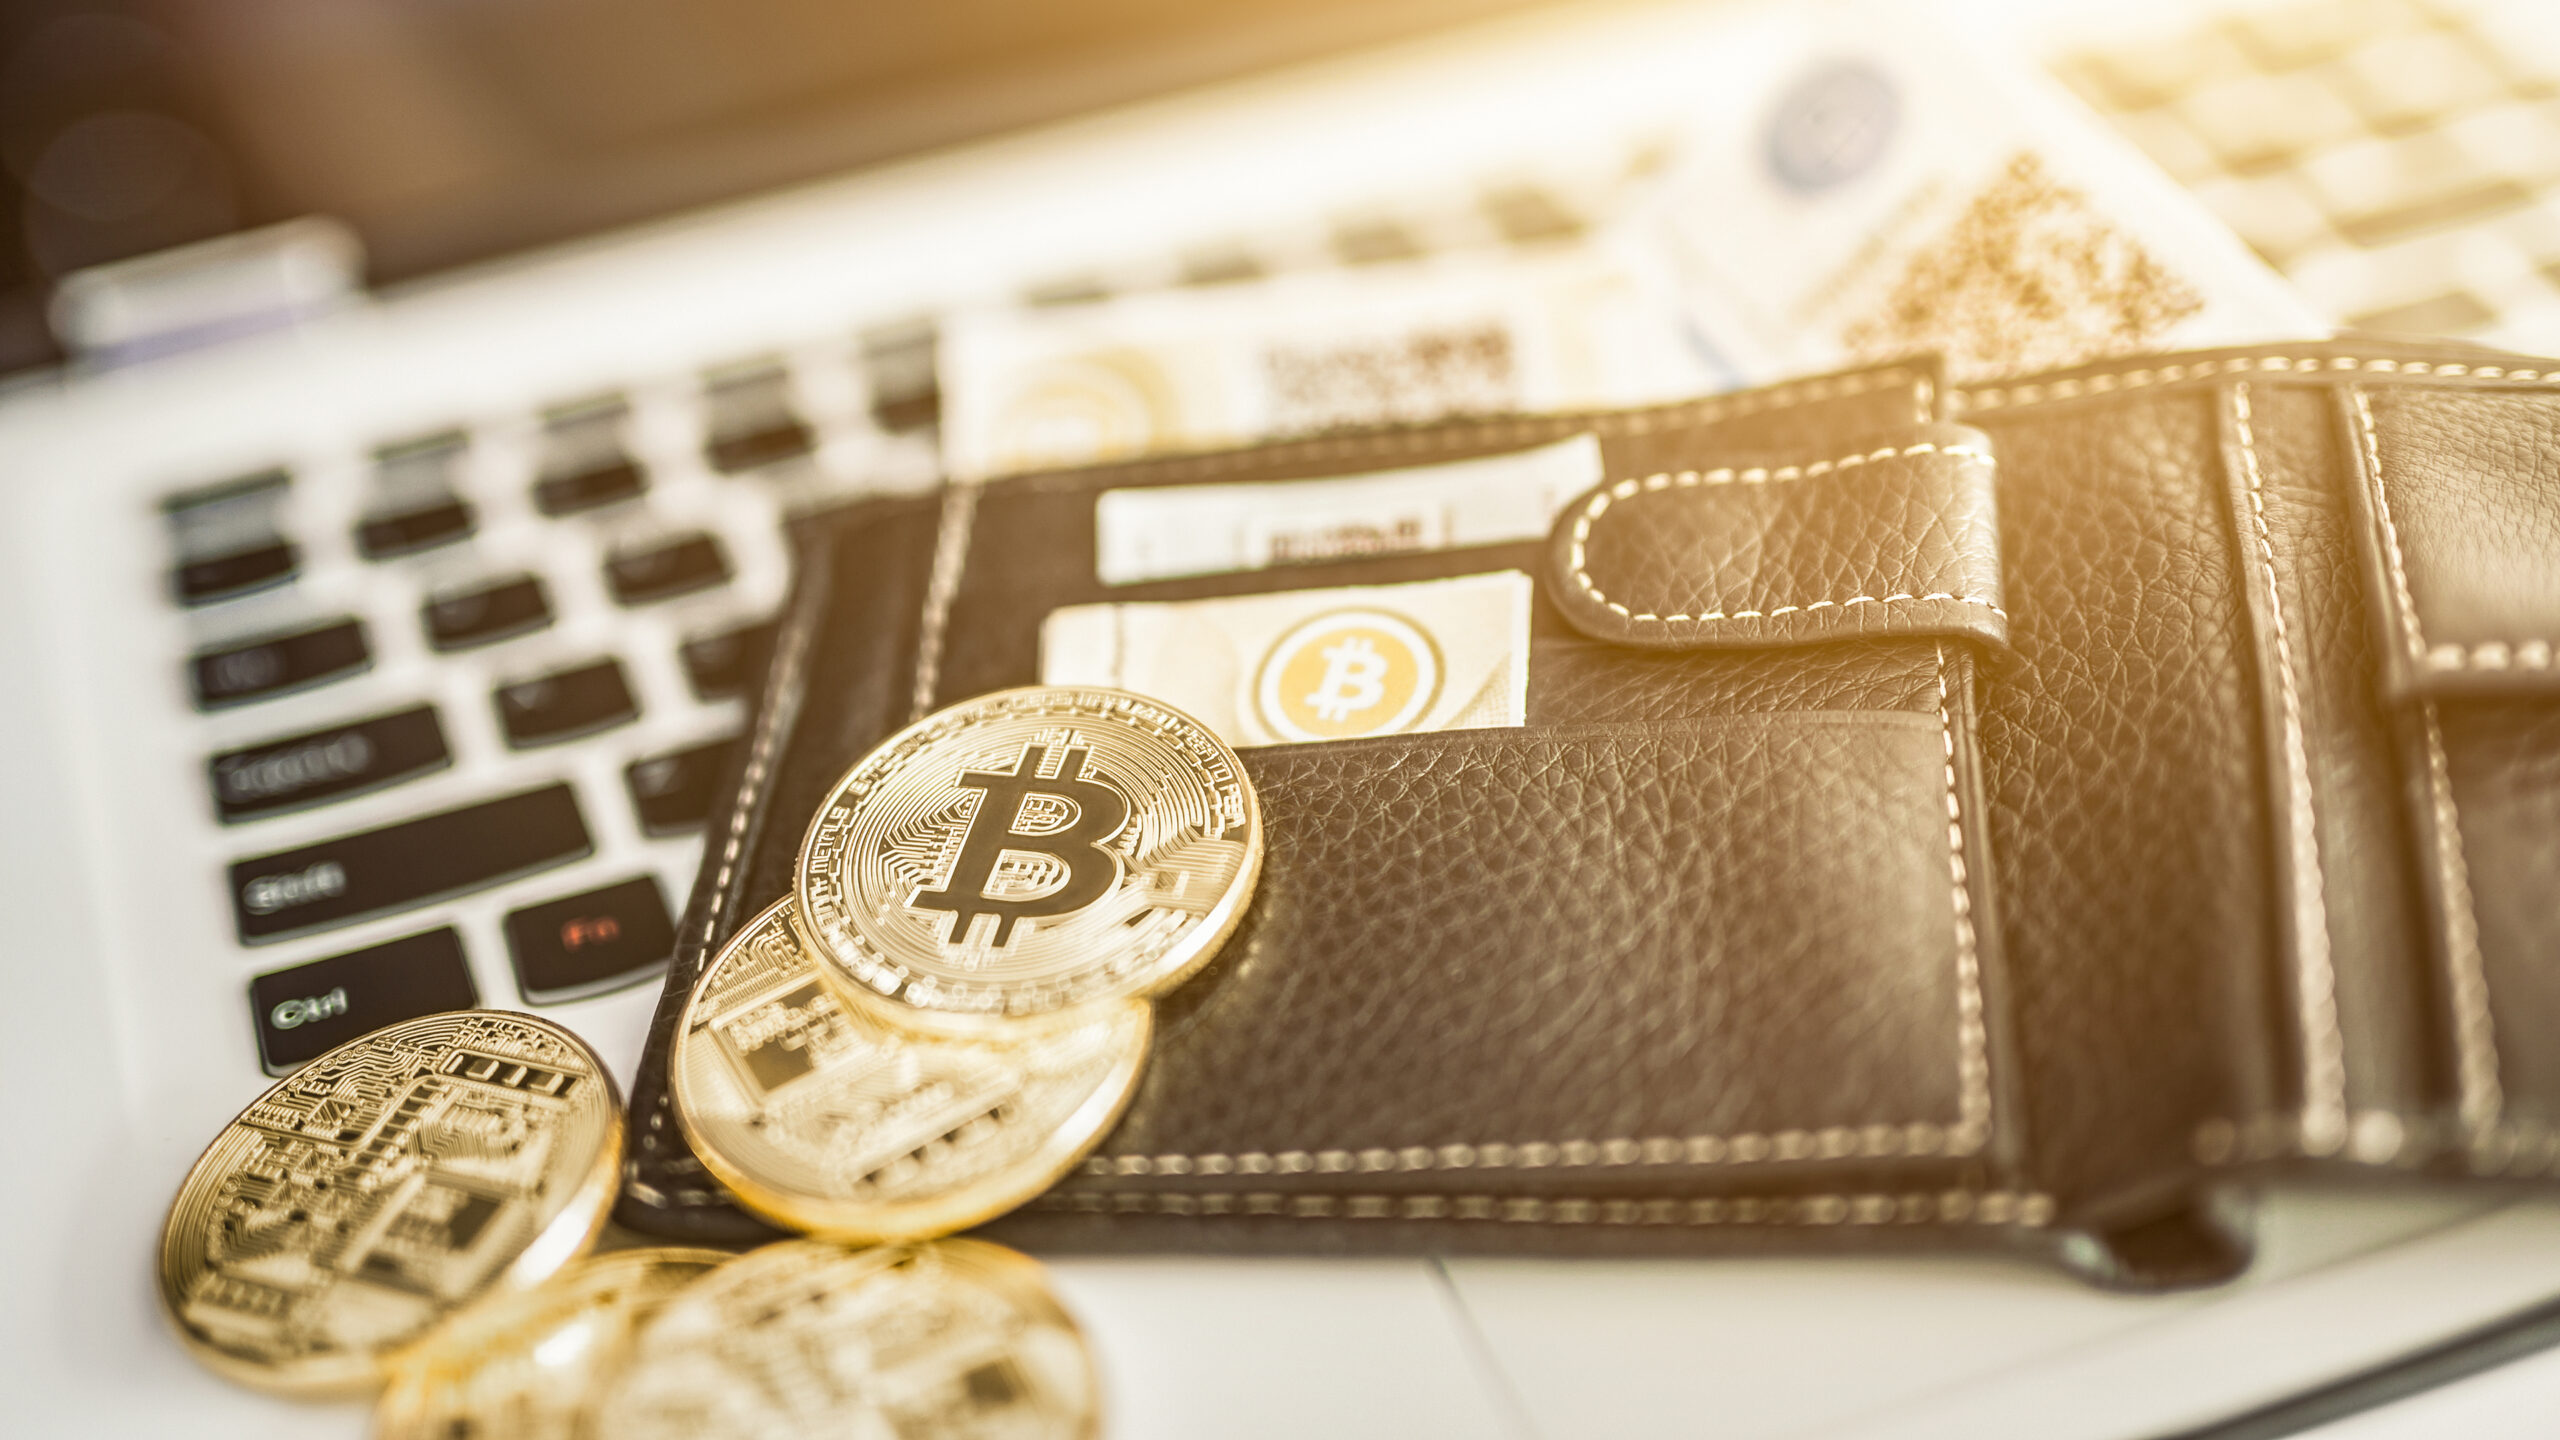 5 Best Crypto Wallets of 2021